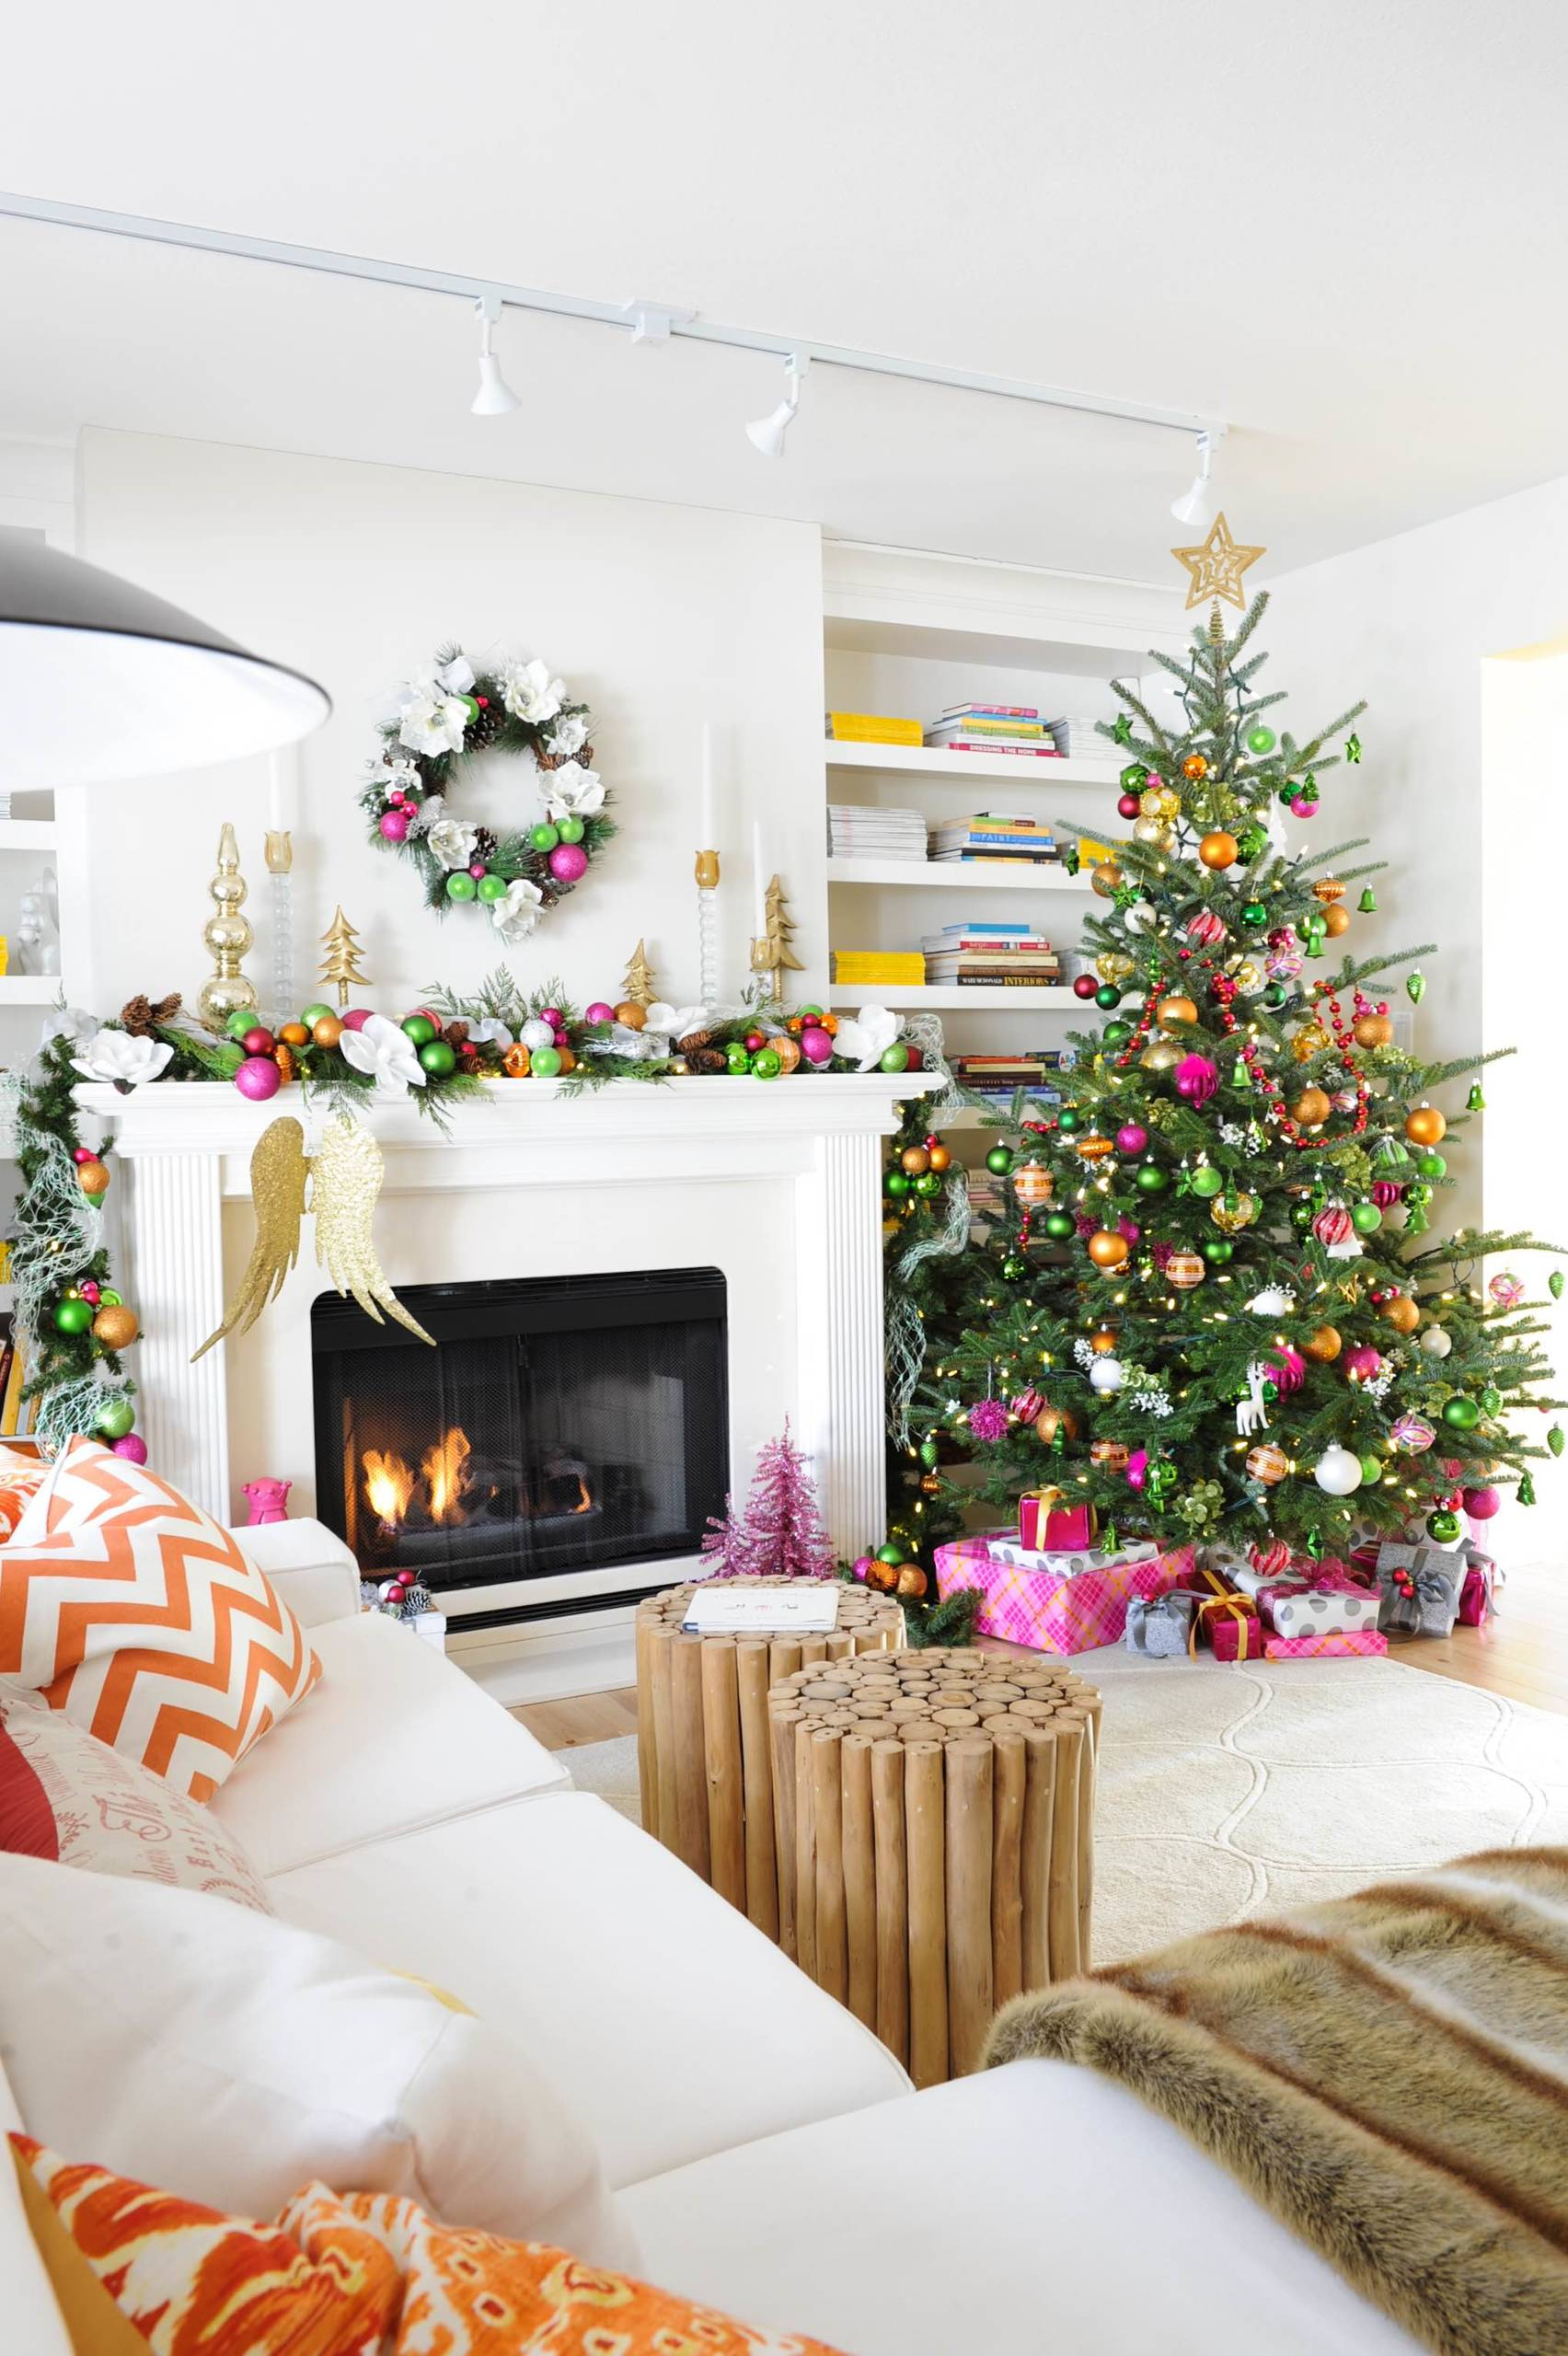 Christmas trends 2018 2019 how to organize for Christmas holiday ideas